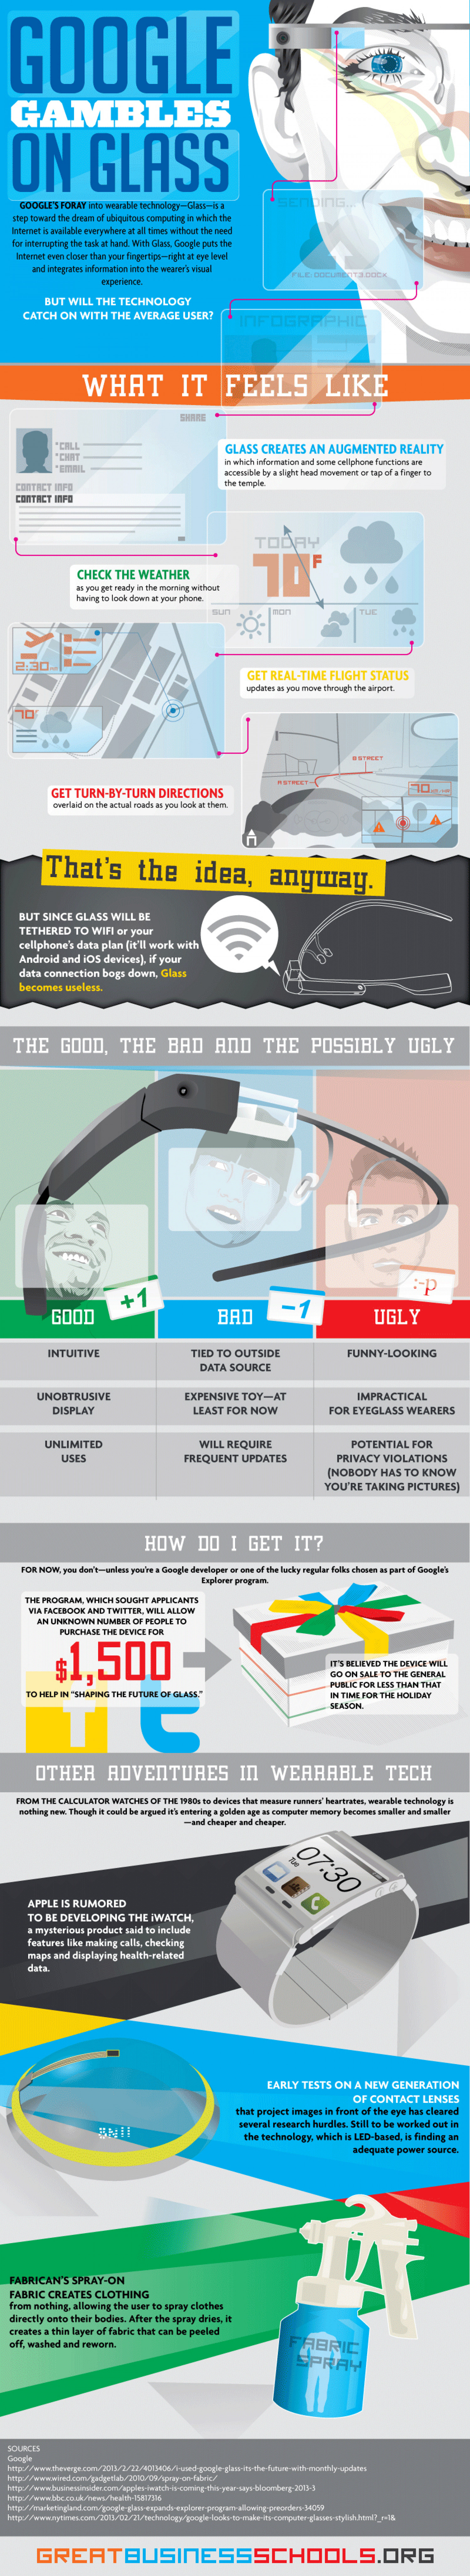 Google Gambles on Glass Infographic